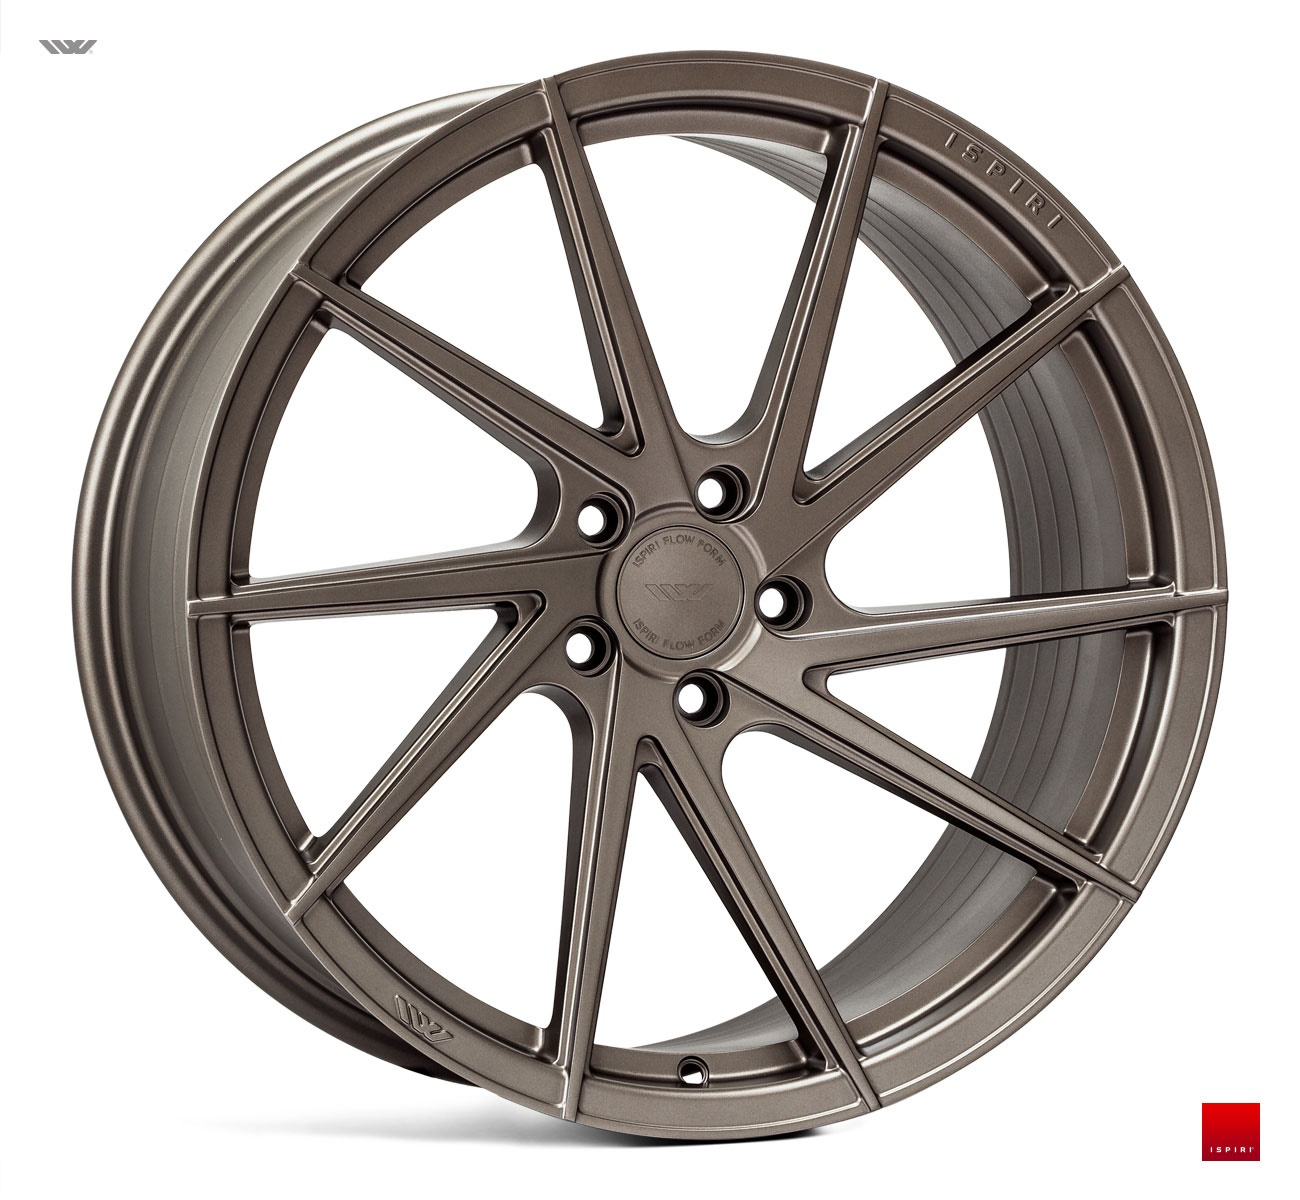 "NEW 21"" ISPIRI FFR1D DIRECTIONAL MULTI-SPOKE ALLOY WHEELS IN MATT CARBON BRONZE, DEEPER CONCAVE 10.5"" REARS"